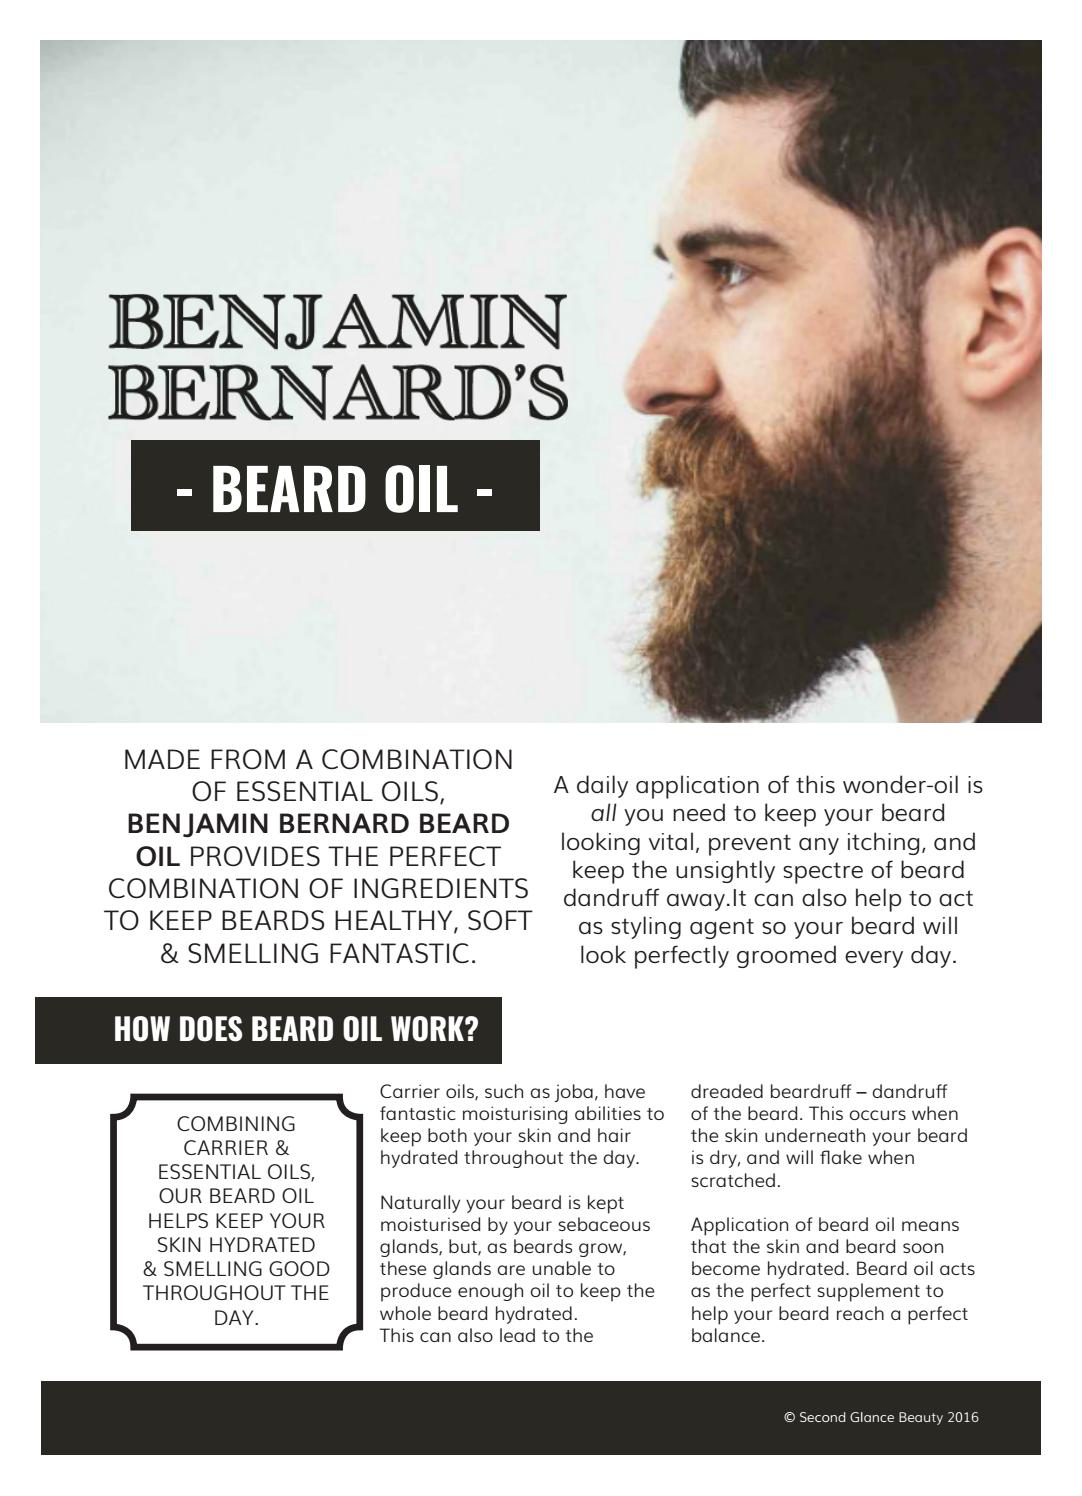 Fabulous Product Brochure Design For Beard Oil By Thekkedit Issuu Schematic Wiring Diagrams Amerangerunnerswayorg